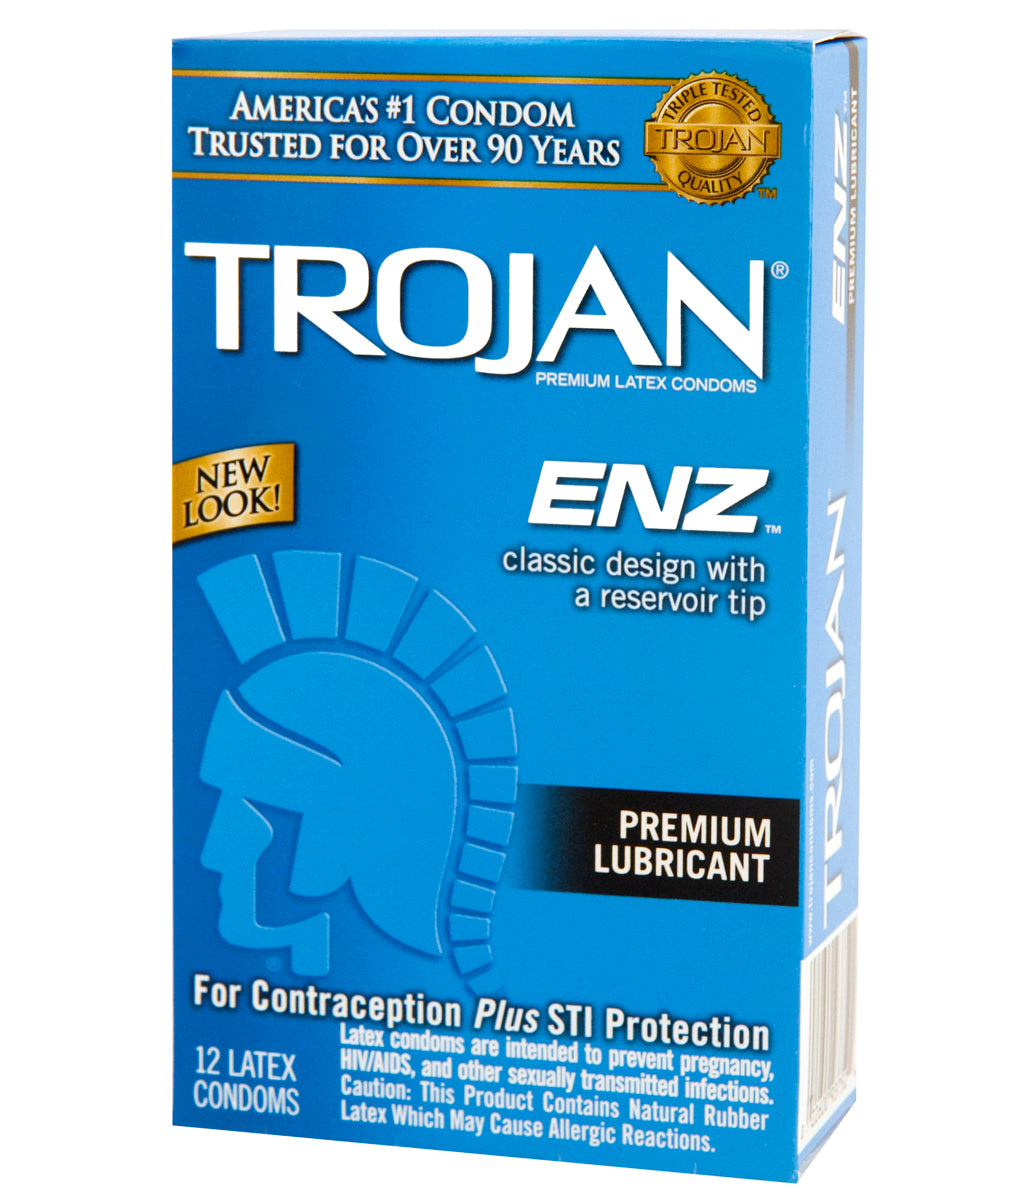 Trojan Enz Lubricated Condoms - 12 pack - The Gold Standard of Condoms